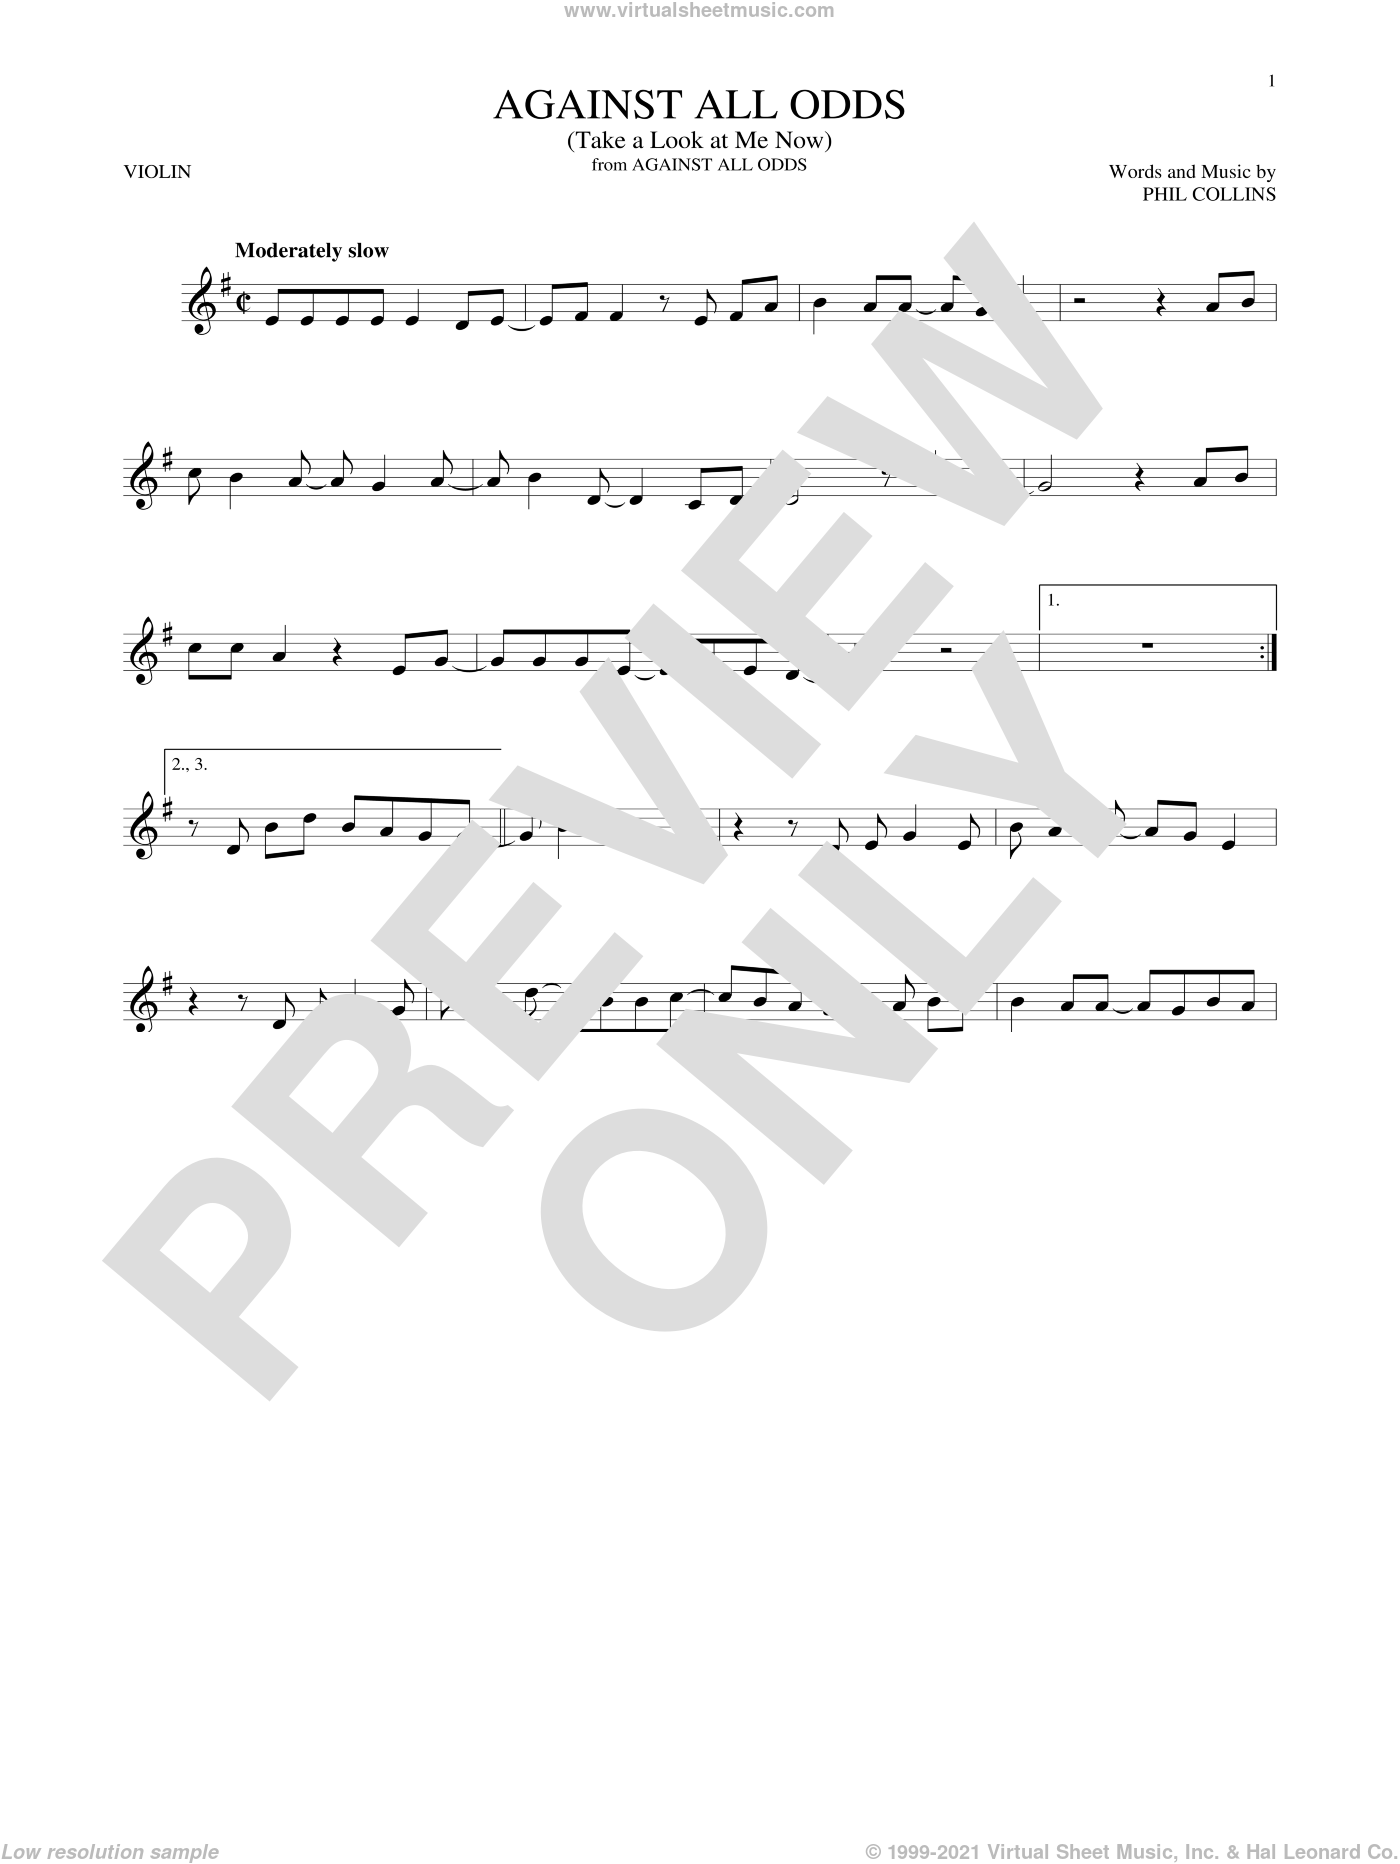 Against All Odds (Take A Look At Me Now) sheet music for violin solo by Phil Collins, intermediate skill level